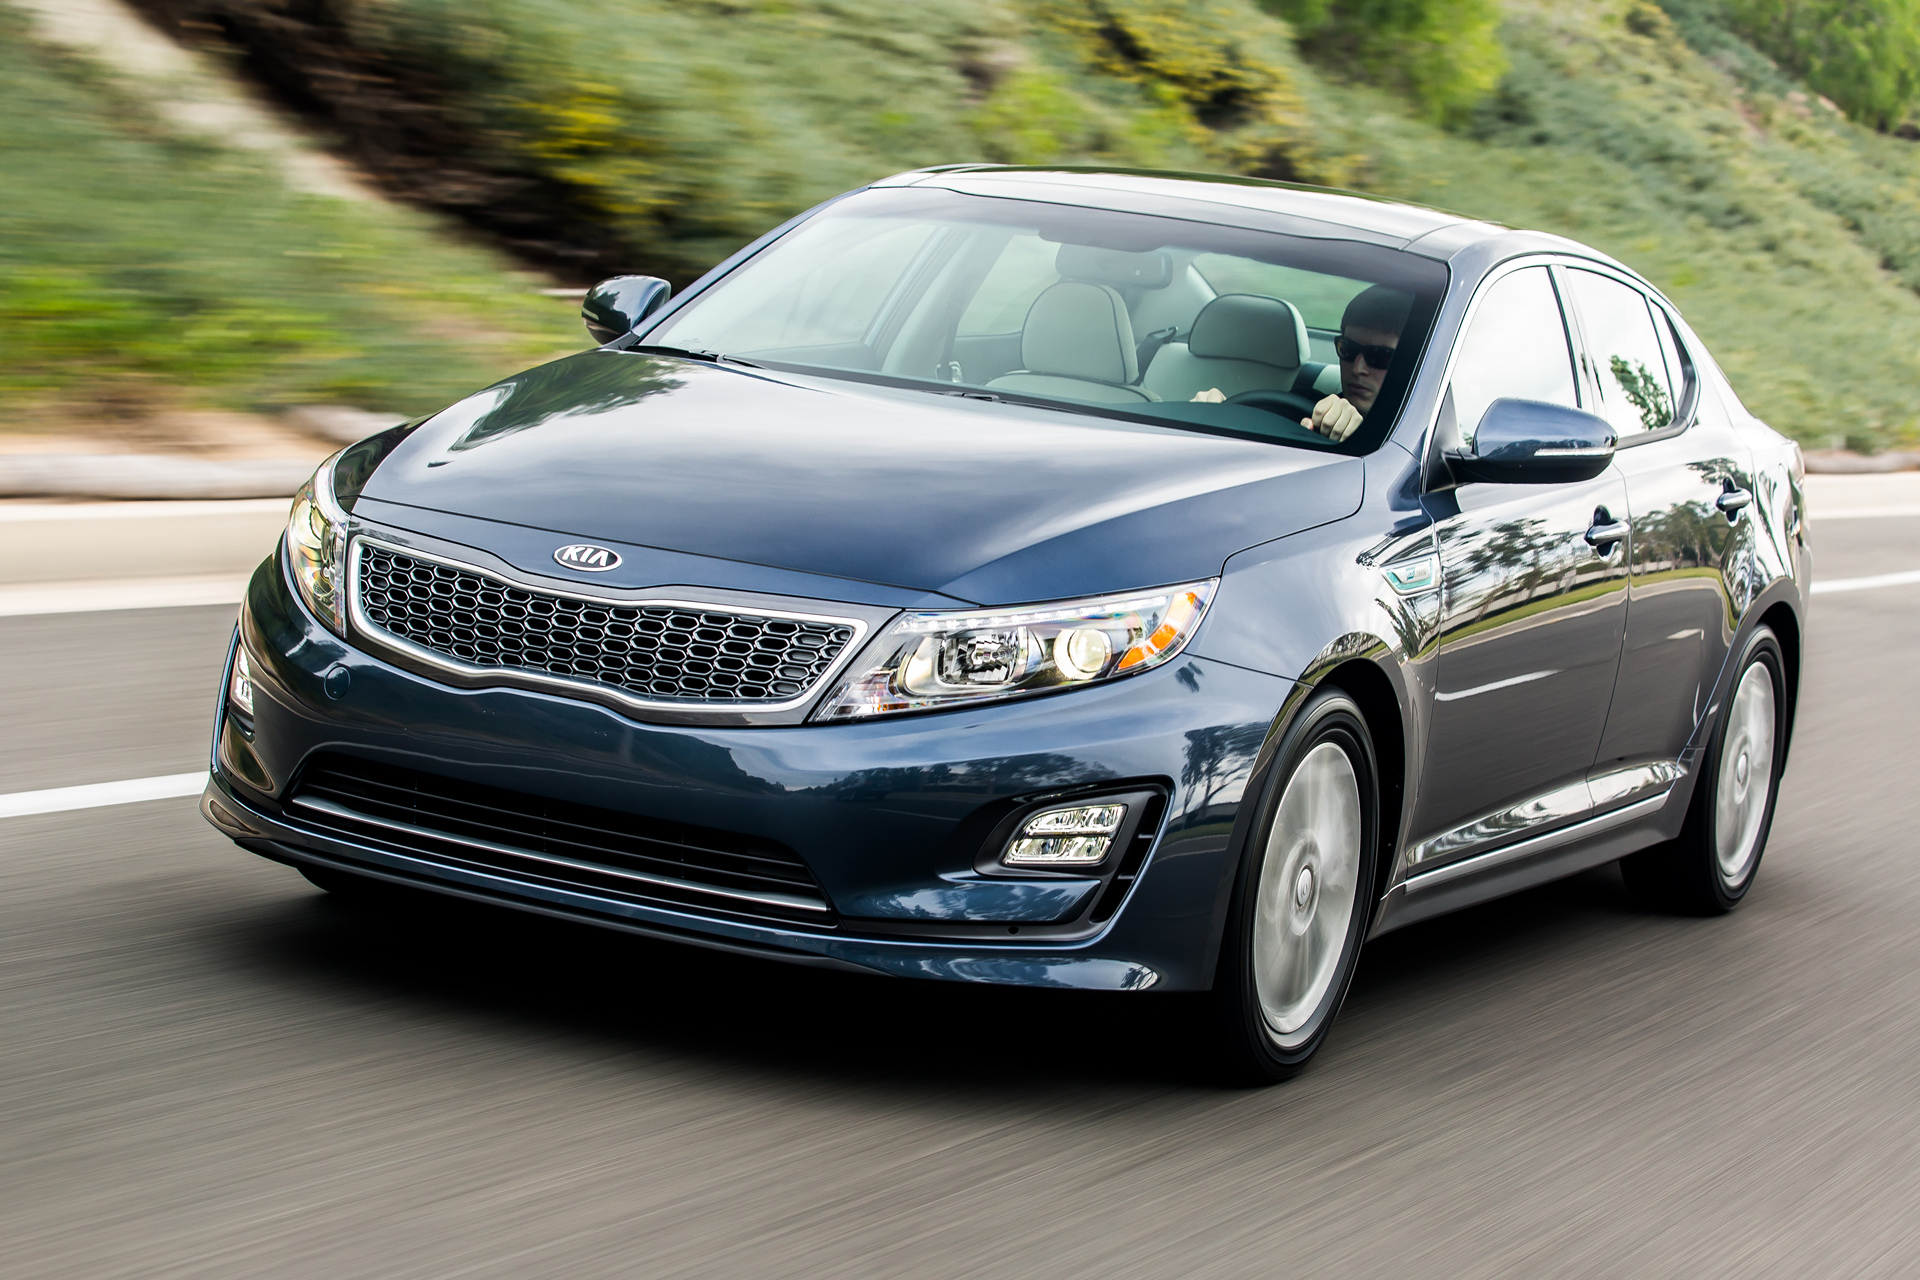 2016 Kia Optima Hybrid Review